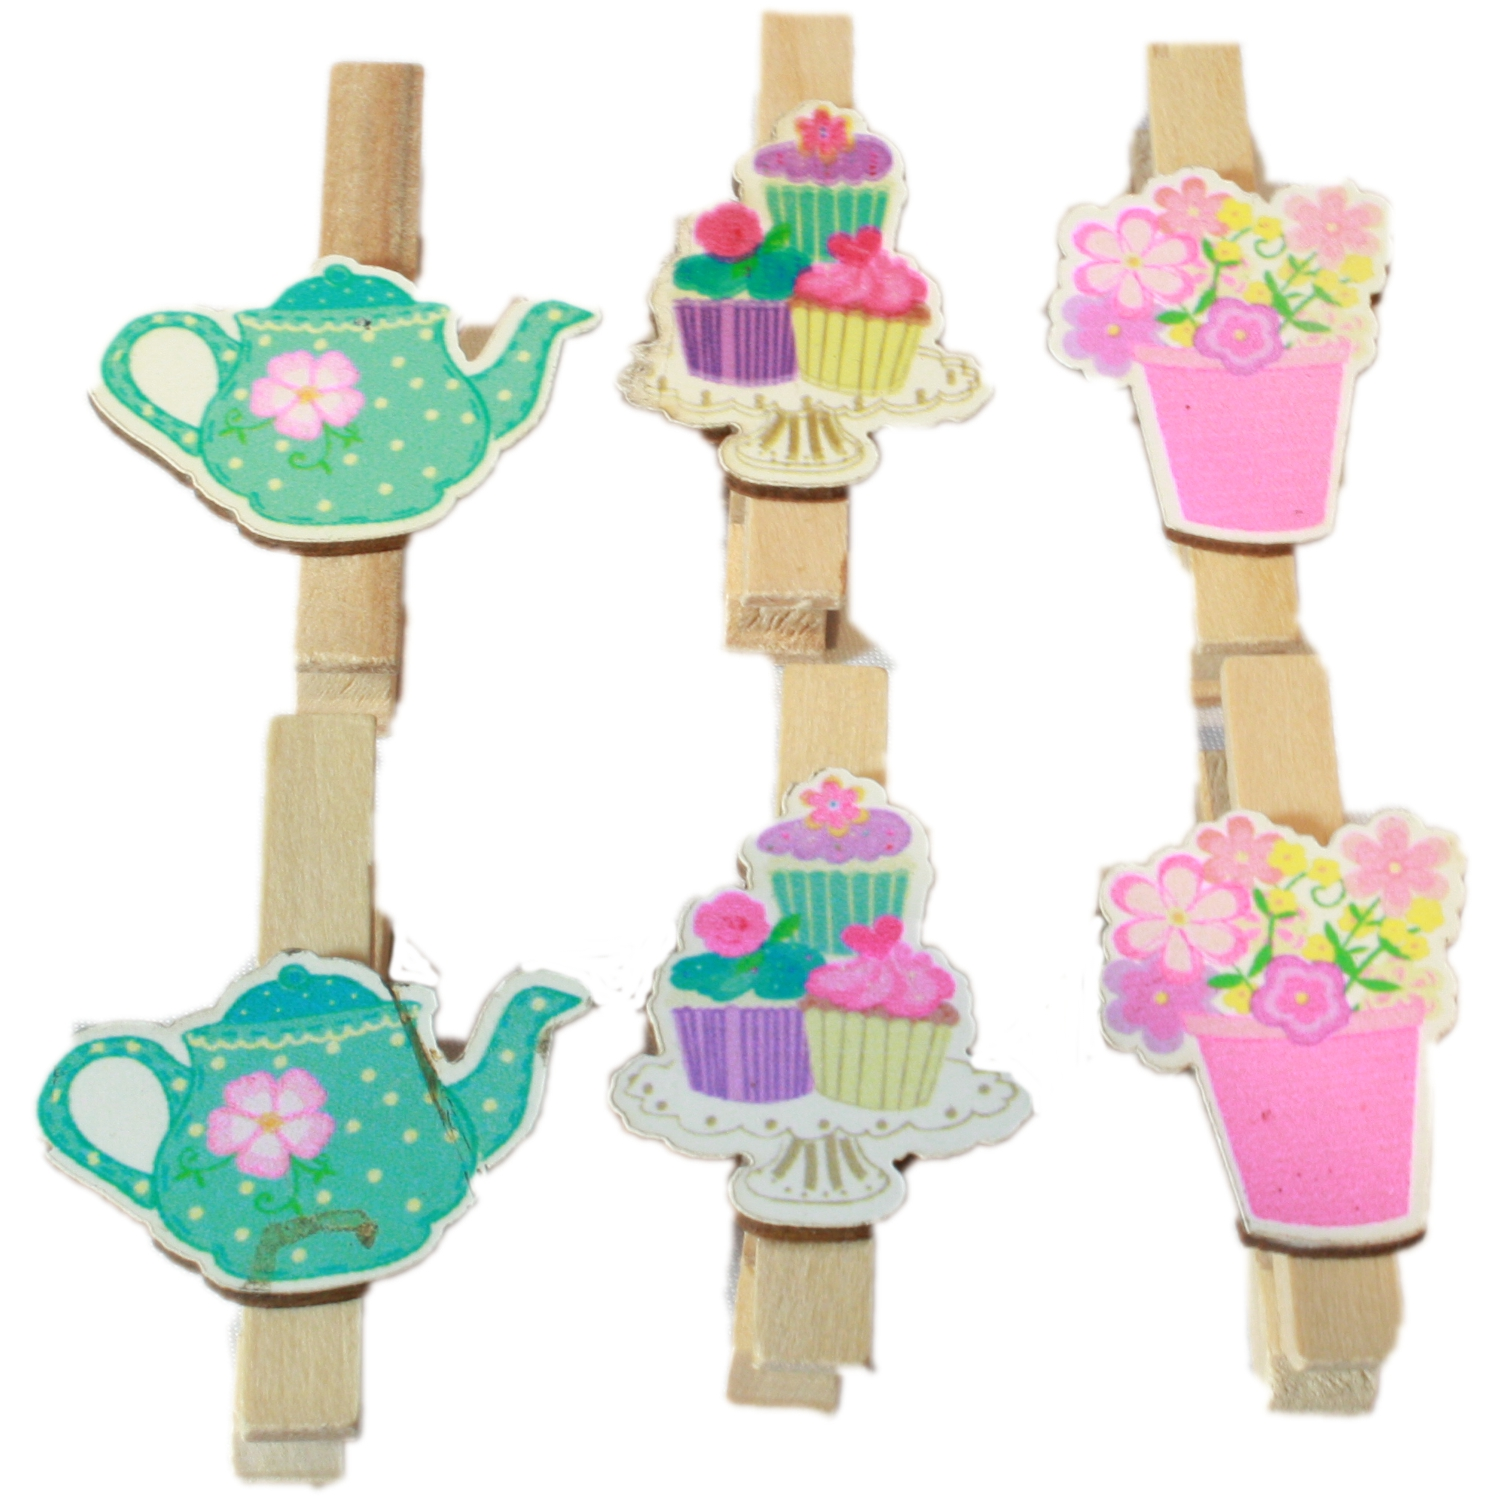 6x Mini Wooden Tea & Cake Party Craft Pegs & Card Pegs